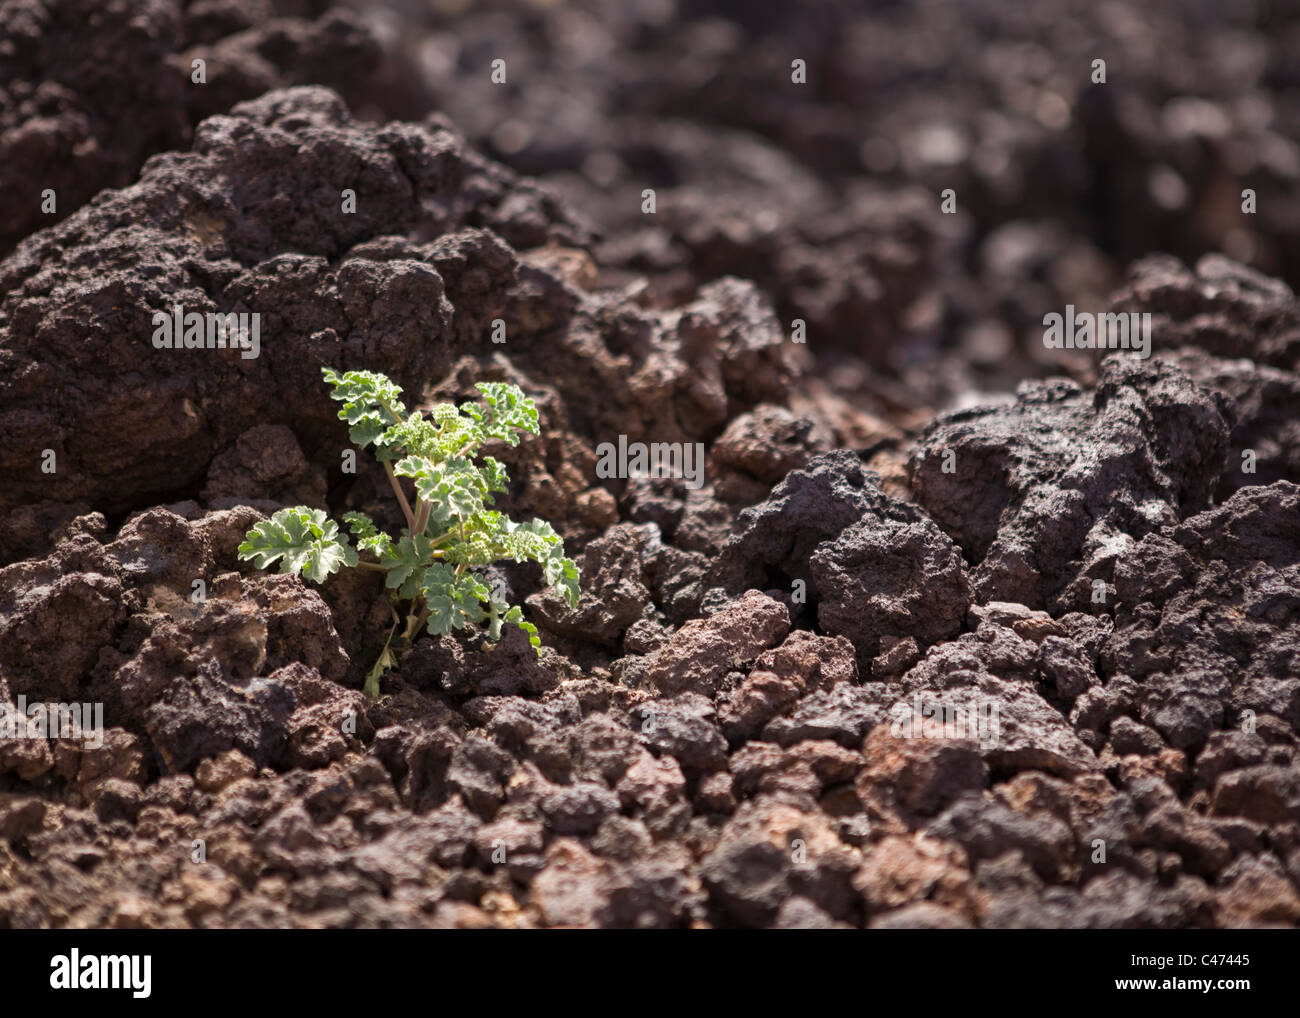 A plant growing on a igneous rock pebbles - Stock Image